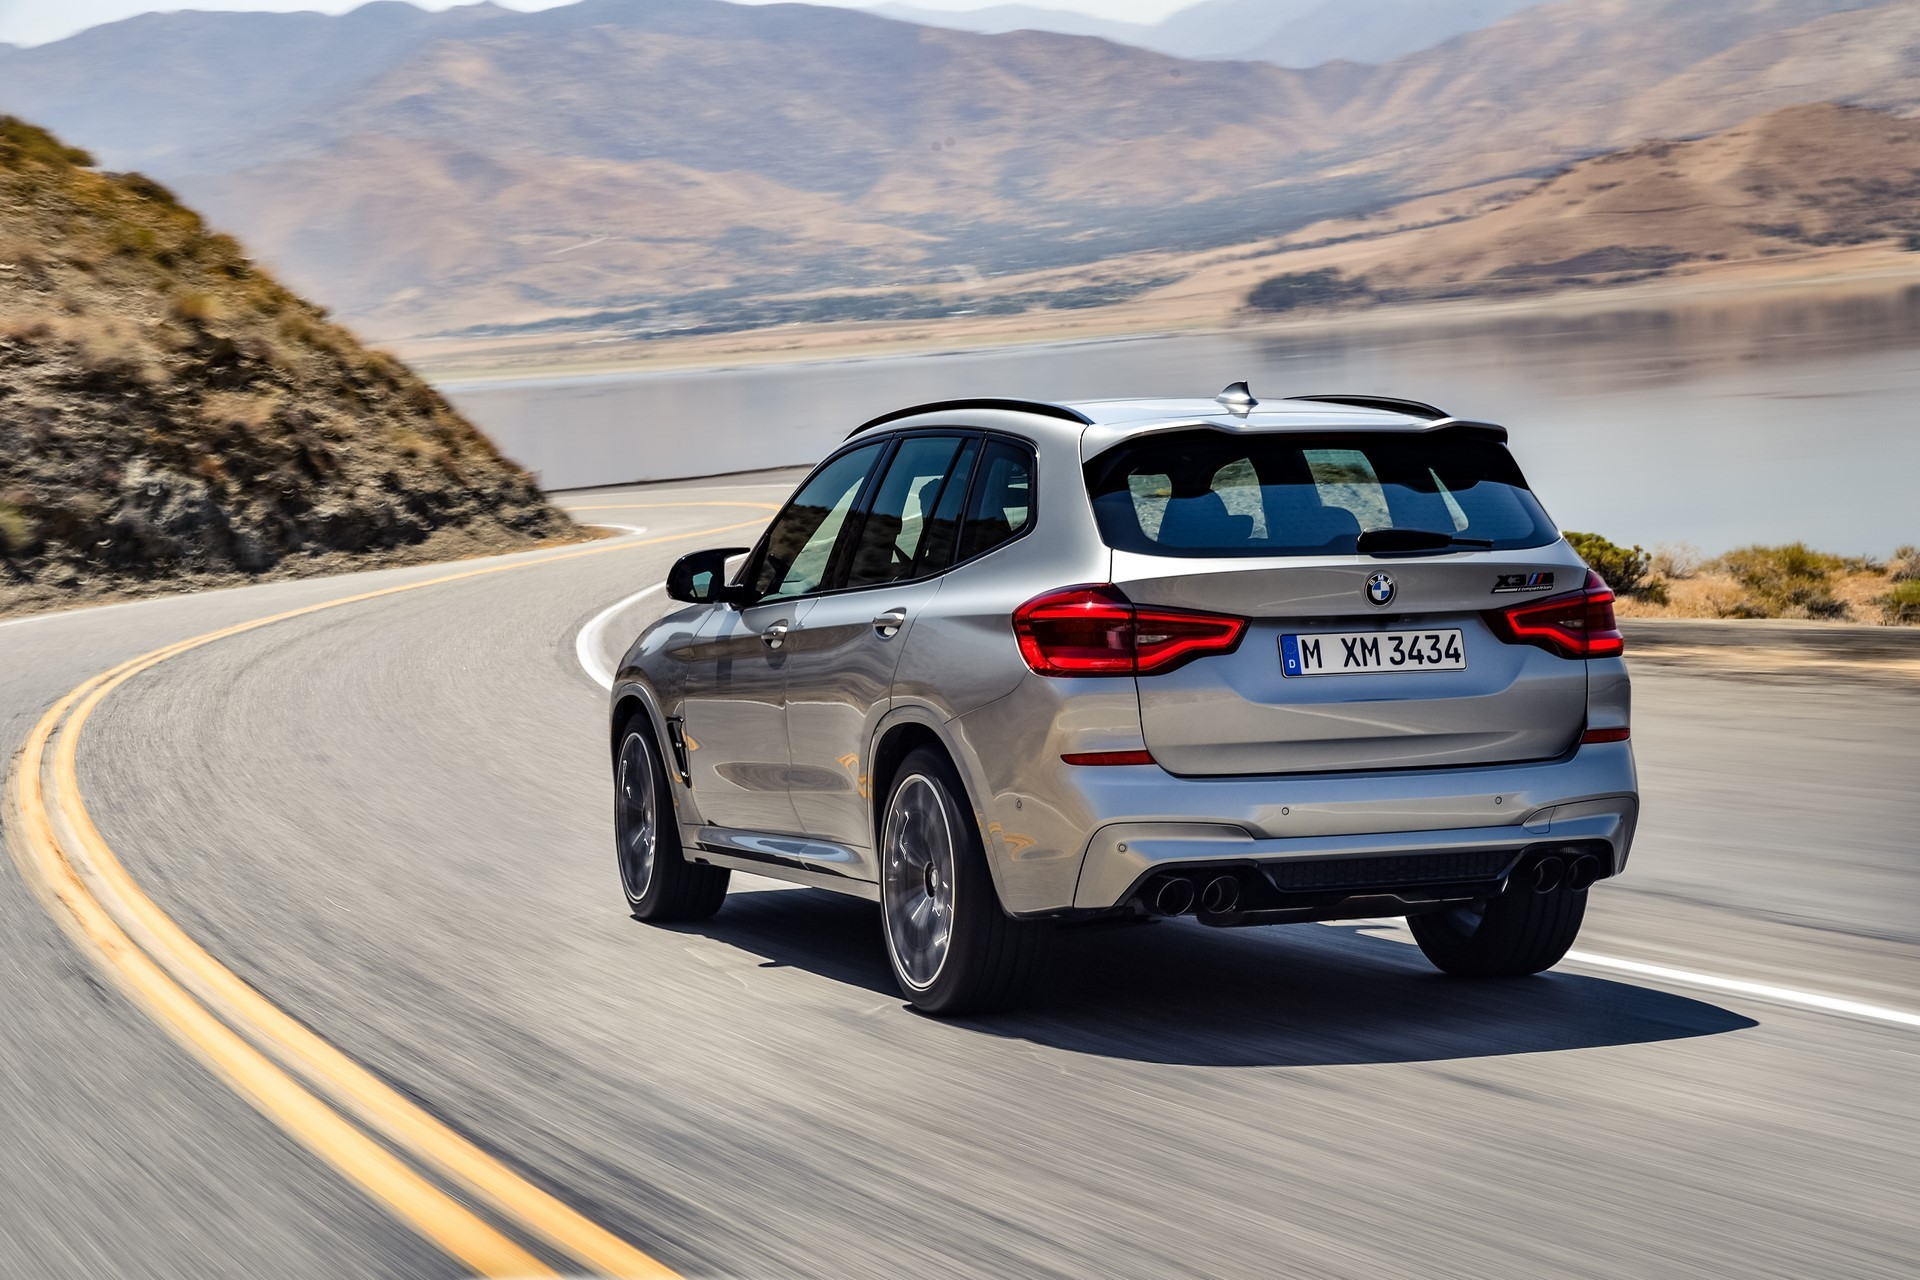 BMW X3 M and X4 M 2019 (30)